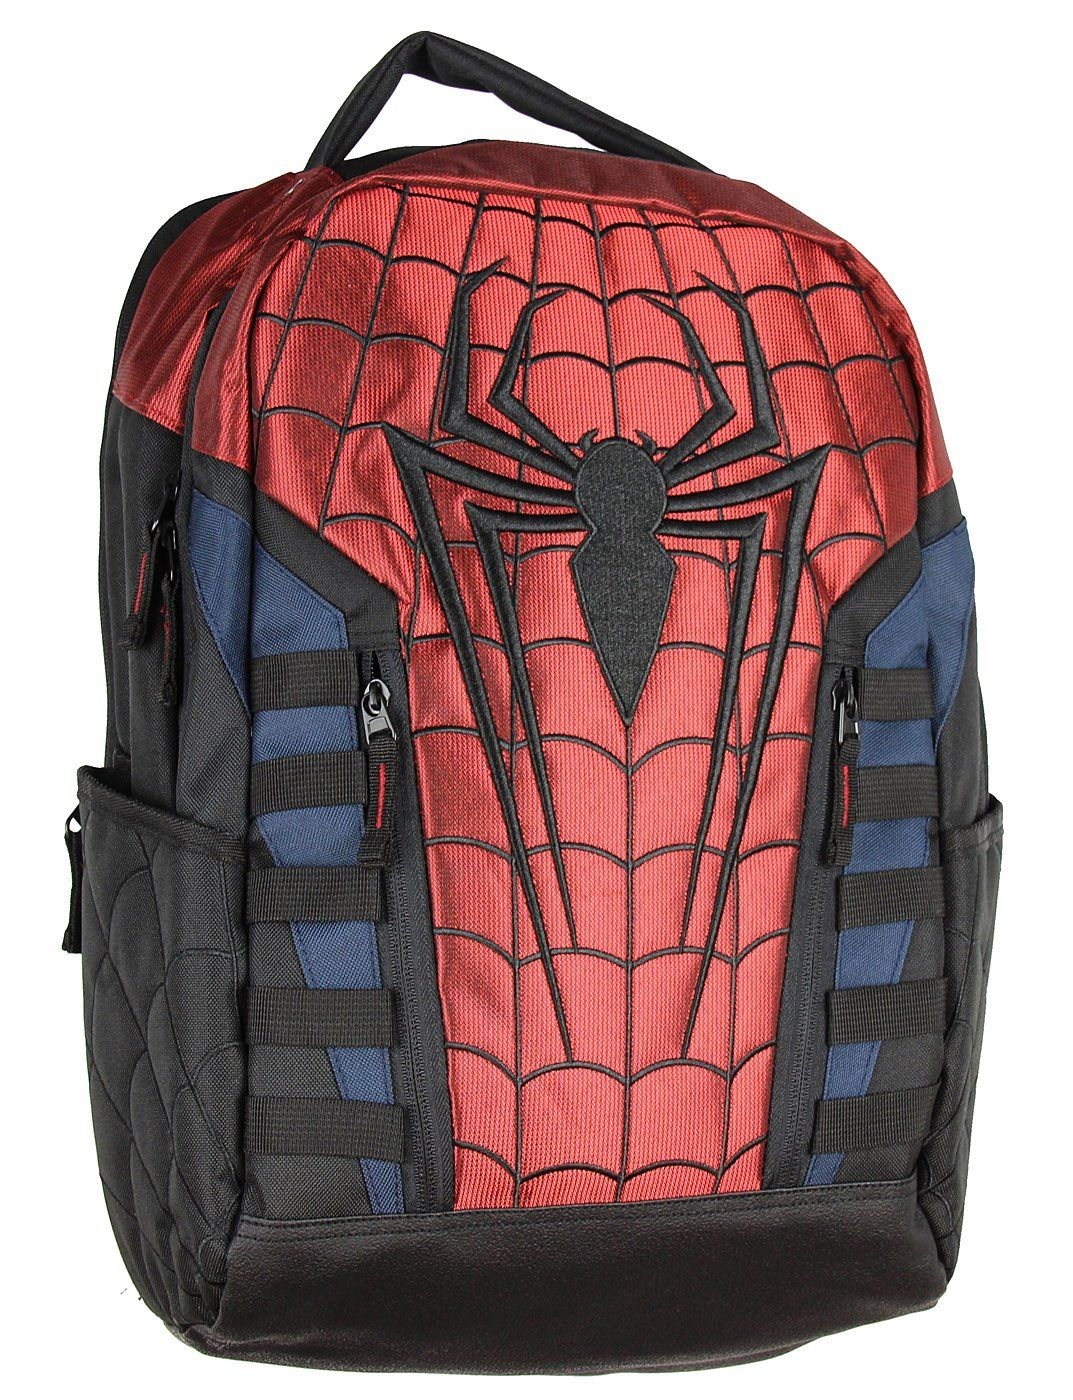 458733f286c8 Marvel Spiderman Logo Backpack. Officially licensed Spider-man merchandise.  TSA friendly padded laptop